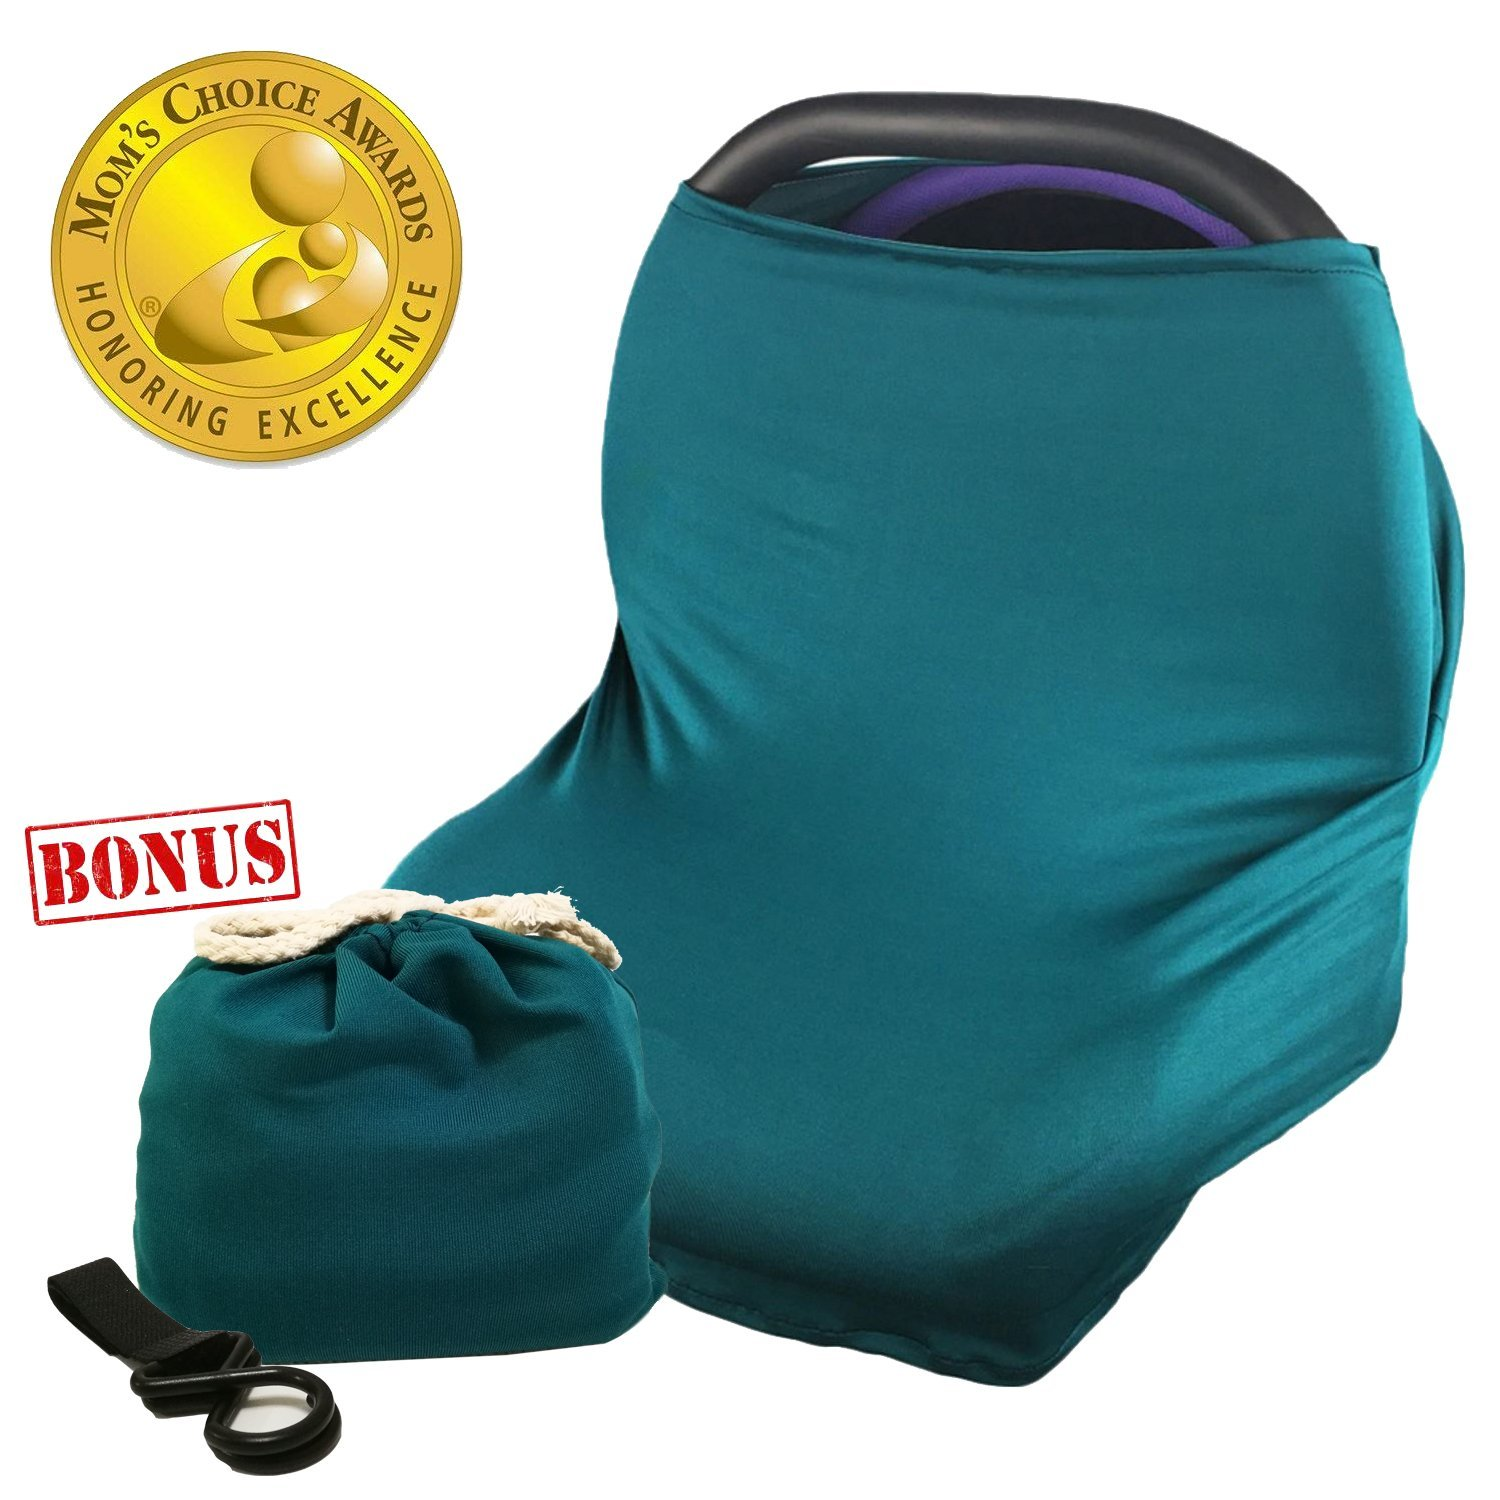 Bears Multi-Use Nursing Cover Baby Car Seat Canopy Shopping Cart Stroller Cover Stretchy Ultra Soft Infant Breastfeeding and Infinity Scarf Gift for New Mom